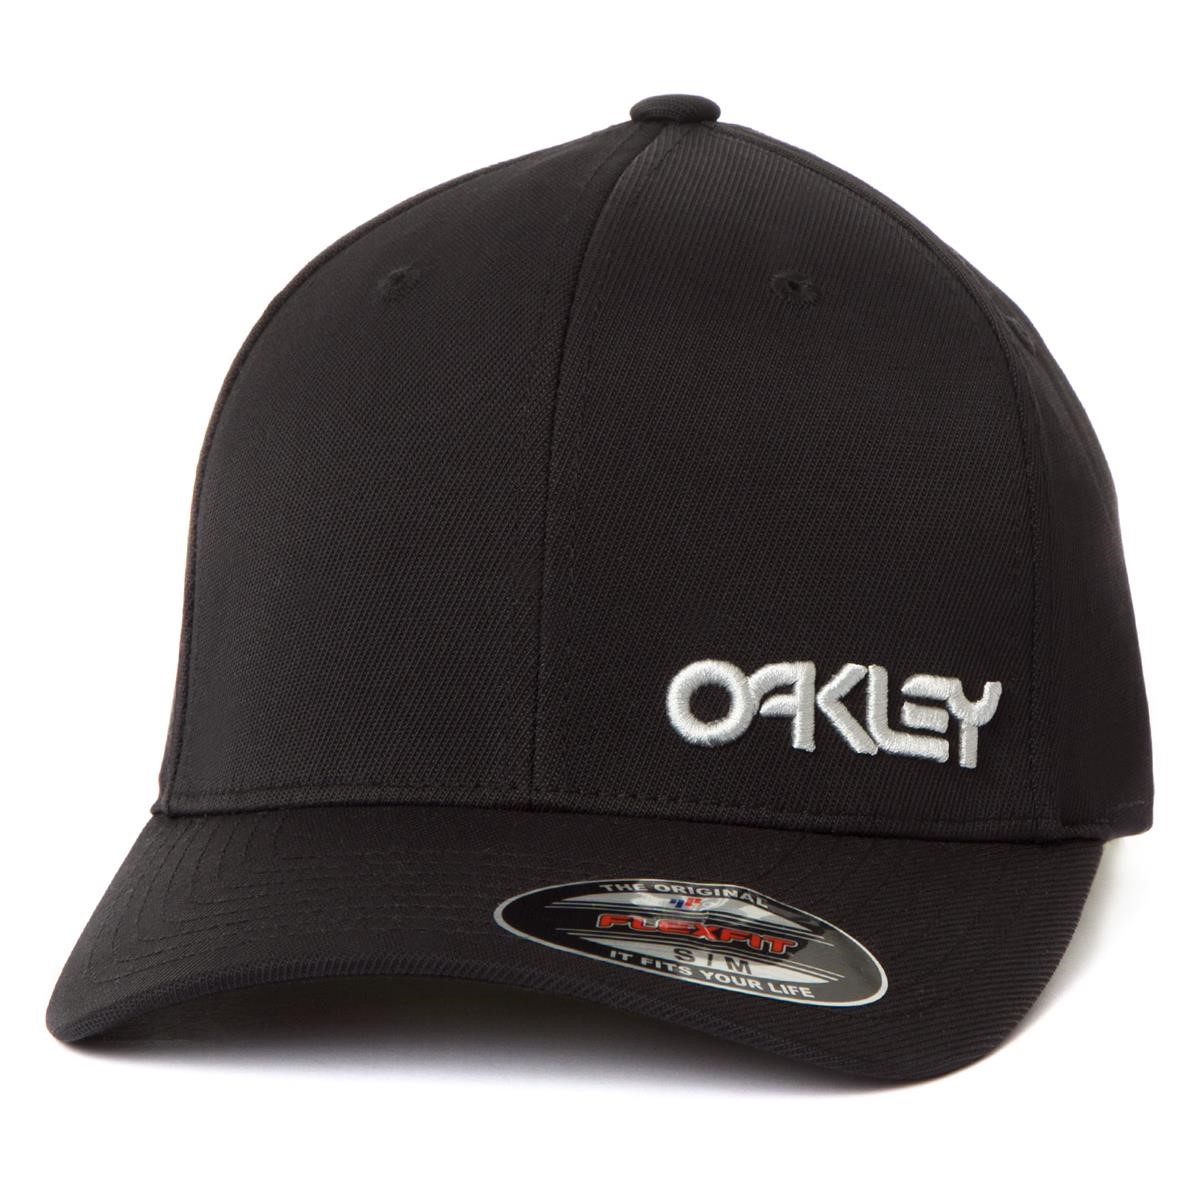 807e77f56 discount code for oakley driver flexfit baseball hat blue b2df7 1626b; real oakley  flexfit cap small factory pilot black maciag offroad acc04 30e55